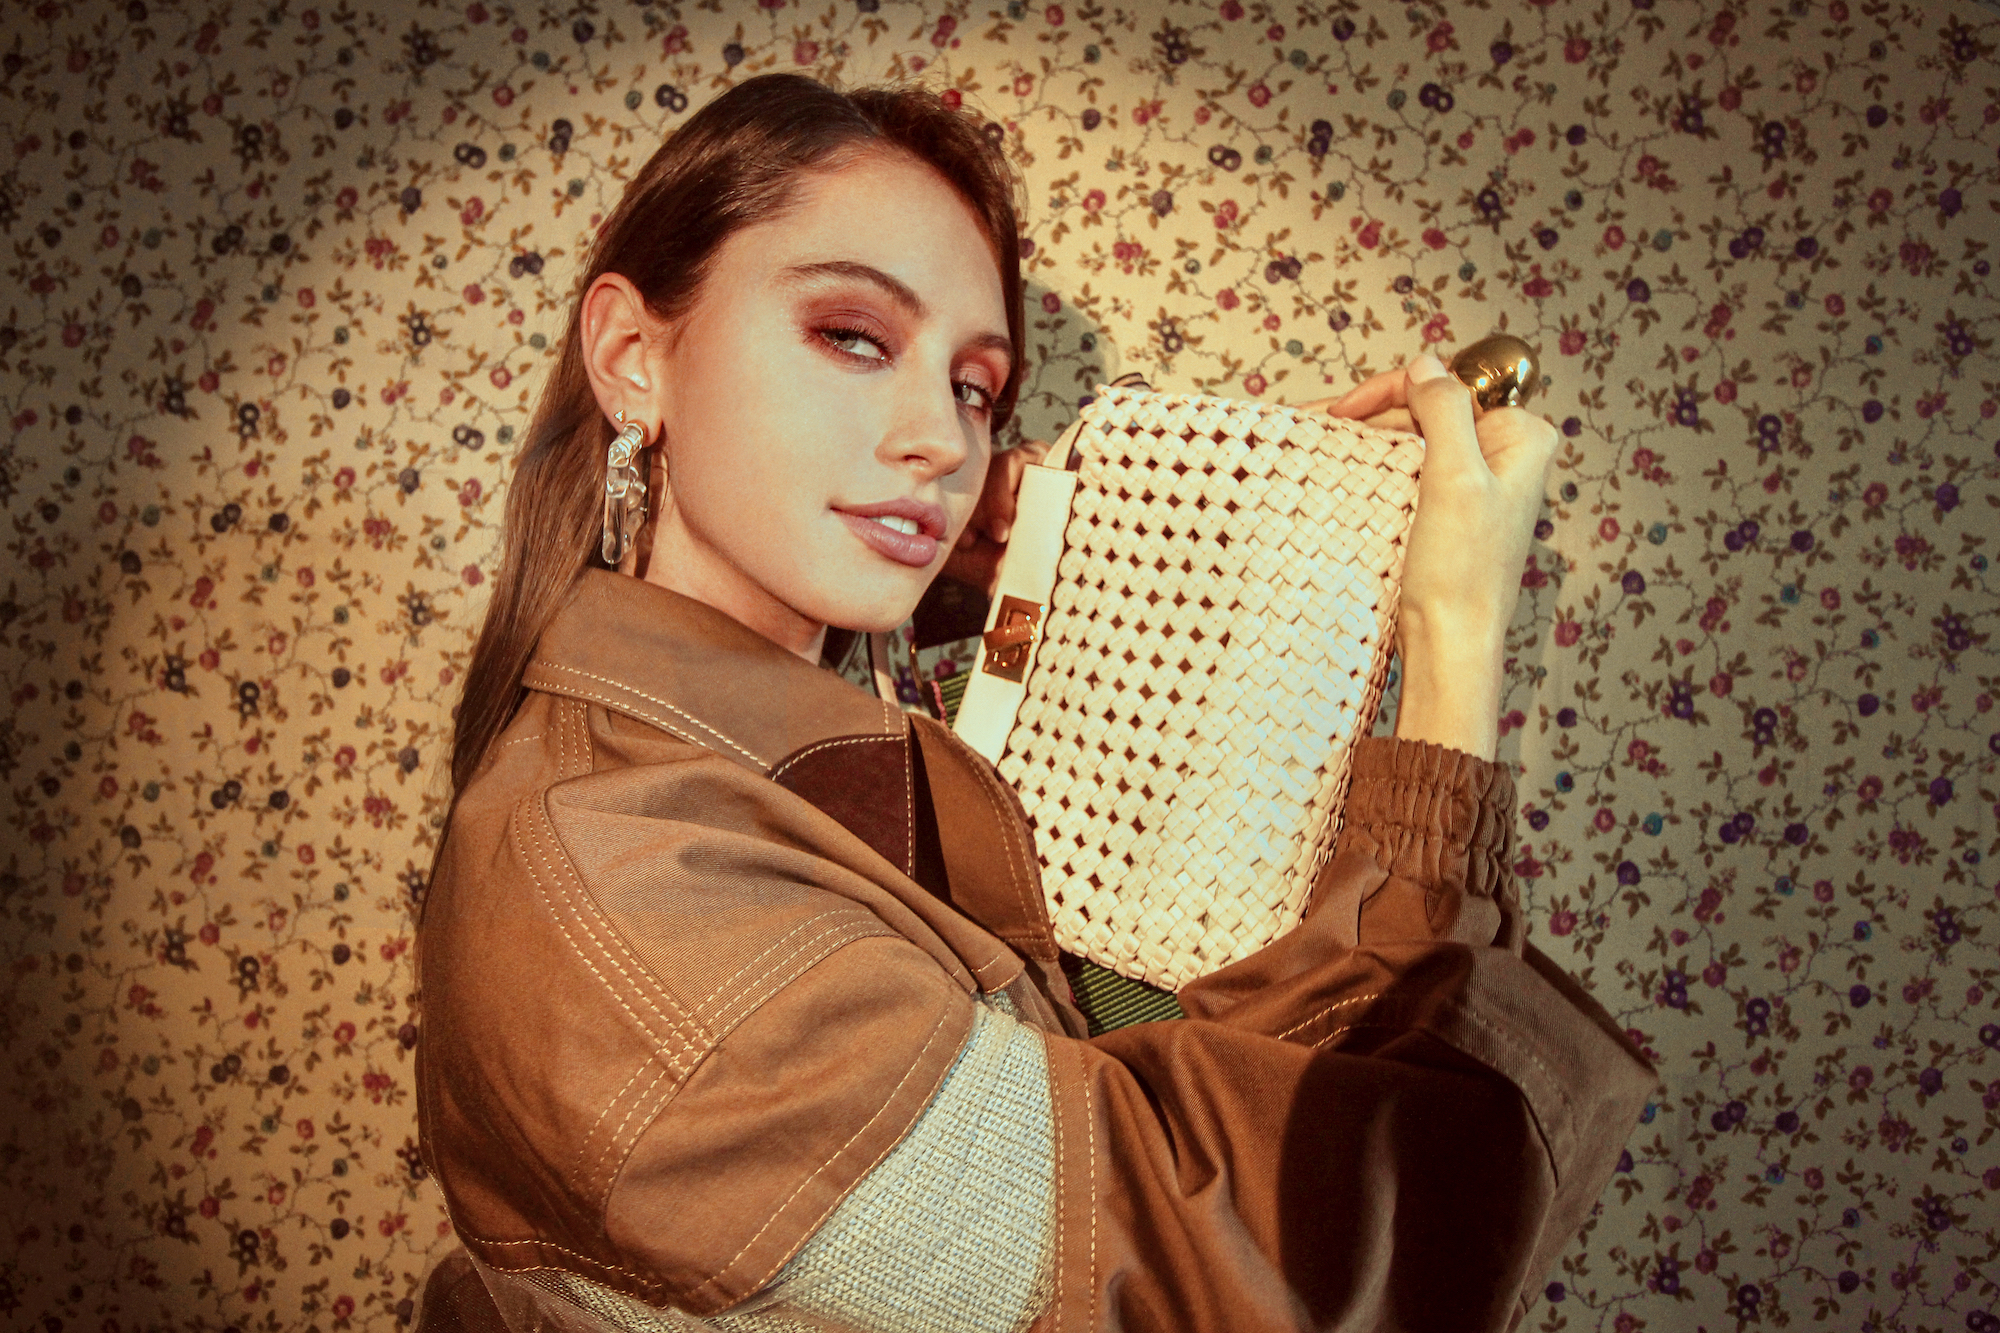 Iris Law is the new face for Fendi Peekaboo bag